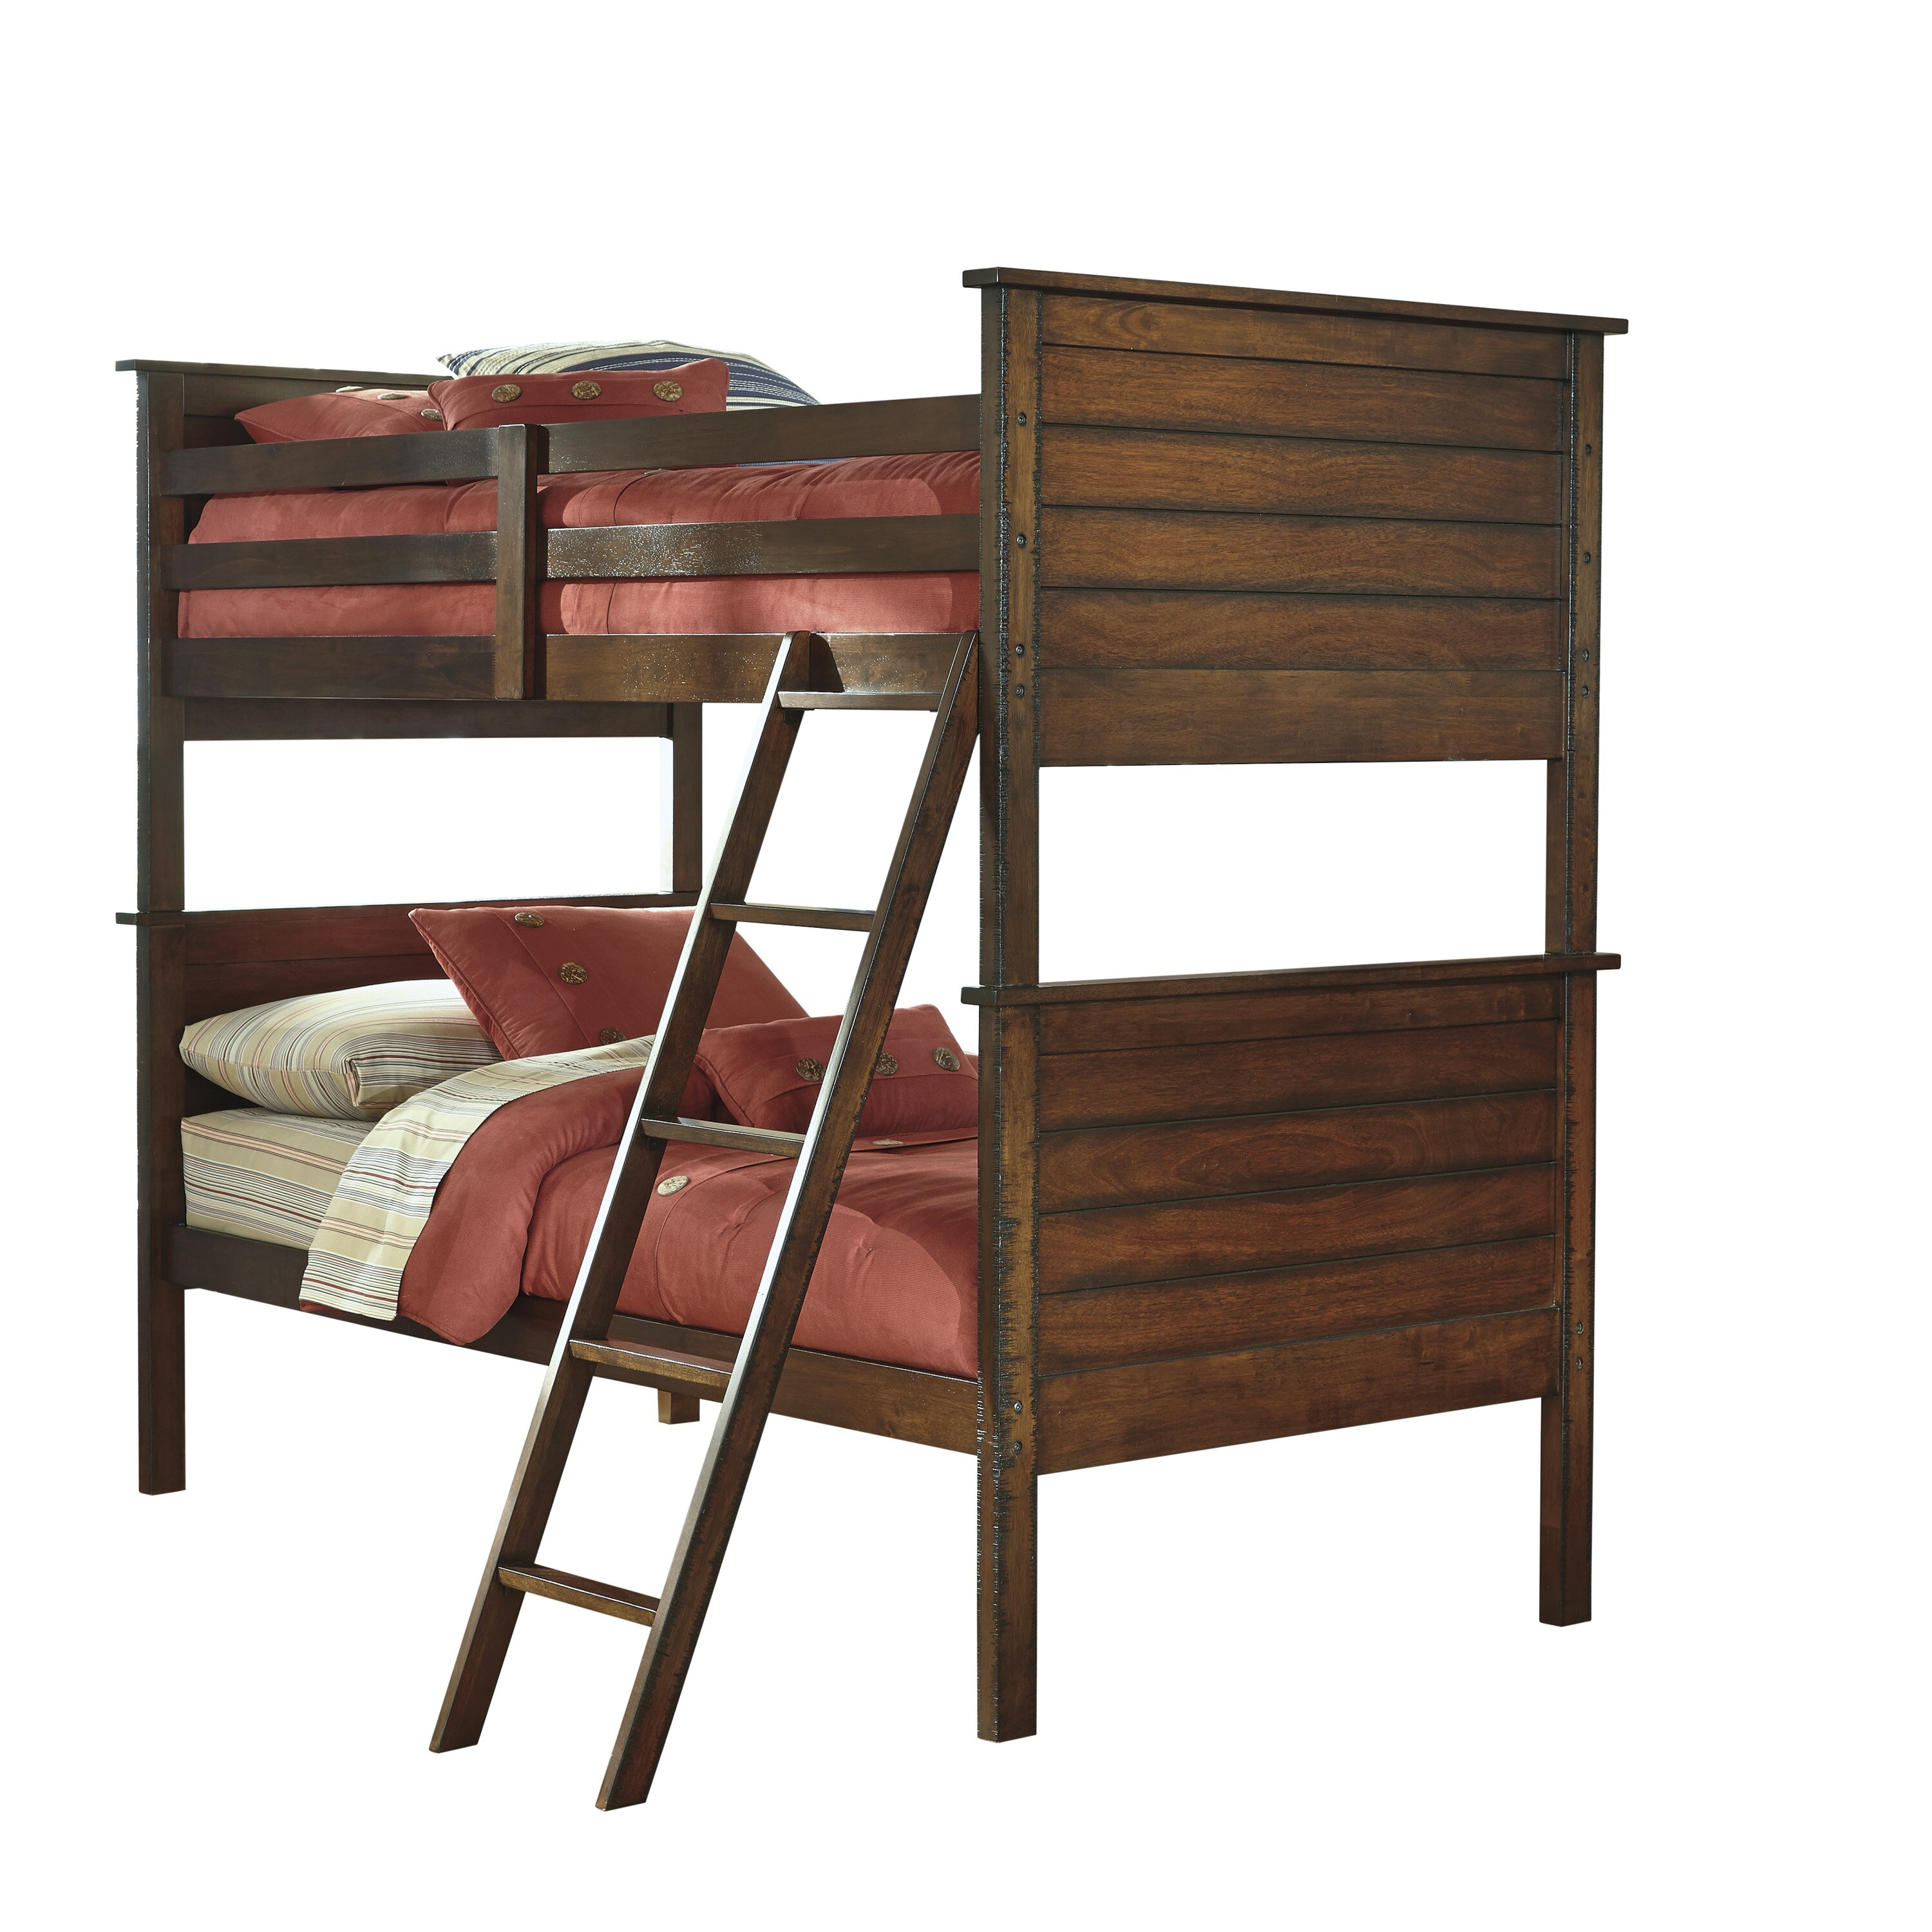 Signature Design By Ashley Ladiville Twin Futon Bunk Bed Customizable Bedroom Set Reviews